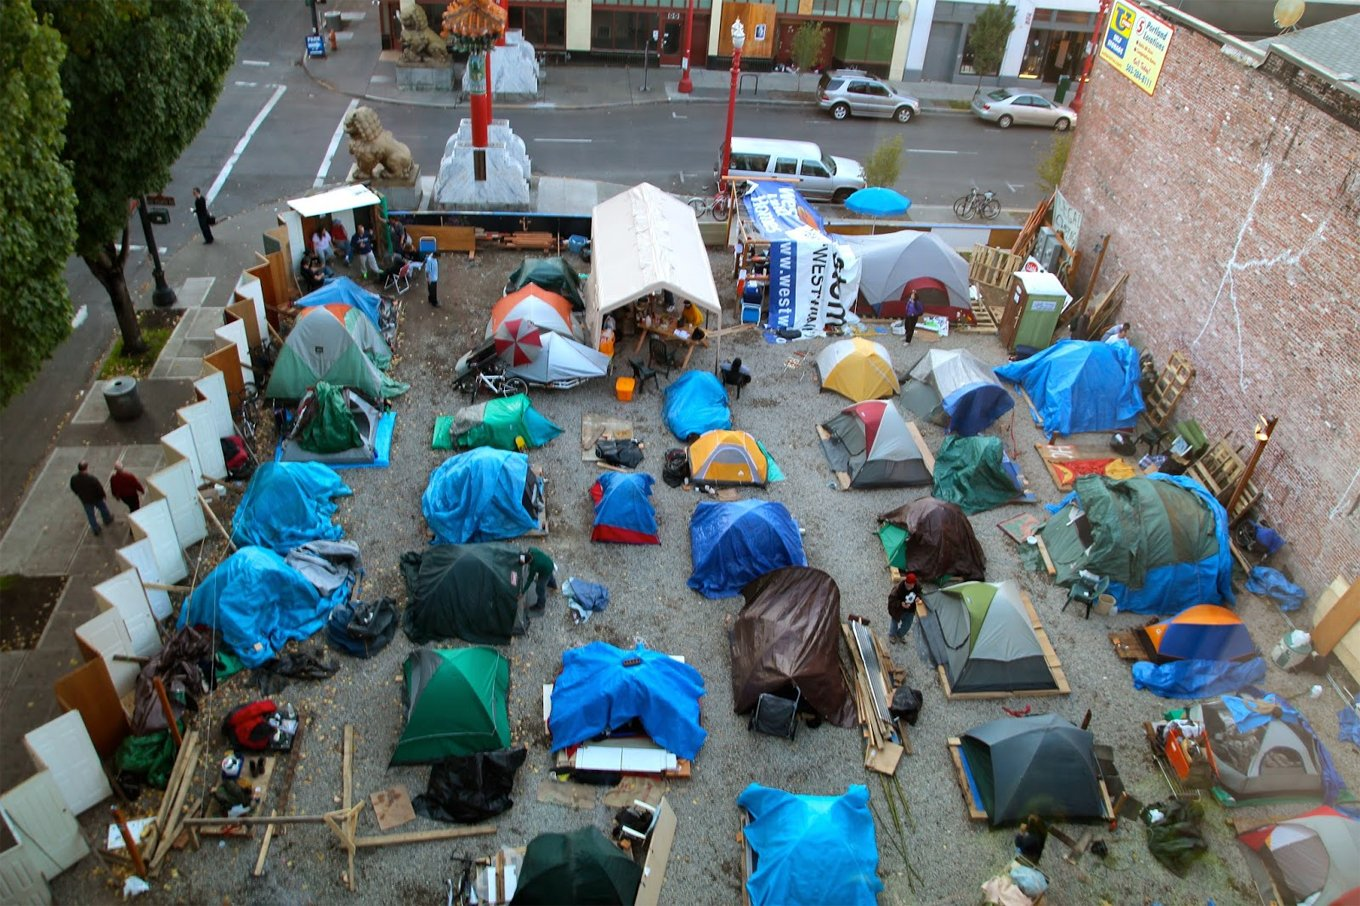 Image result for google image homeless camp seattle